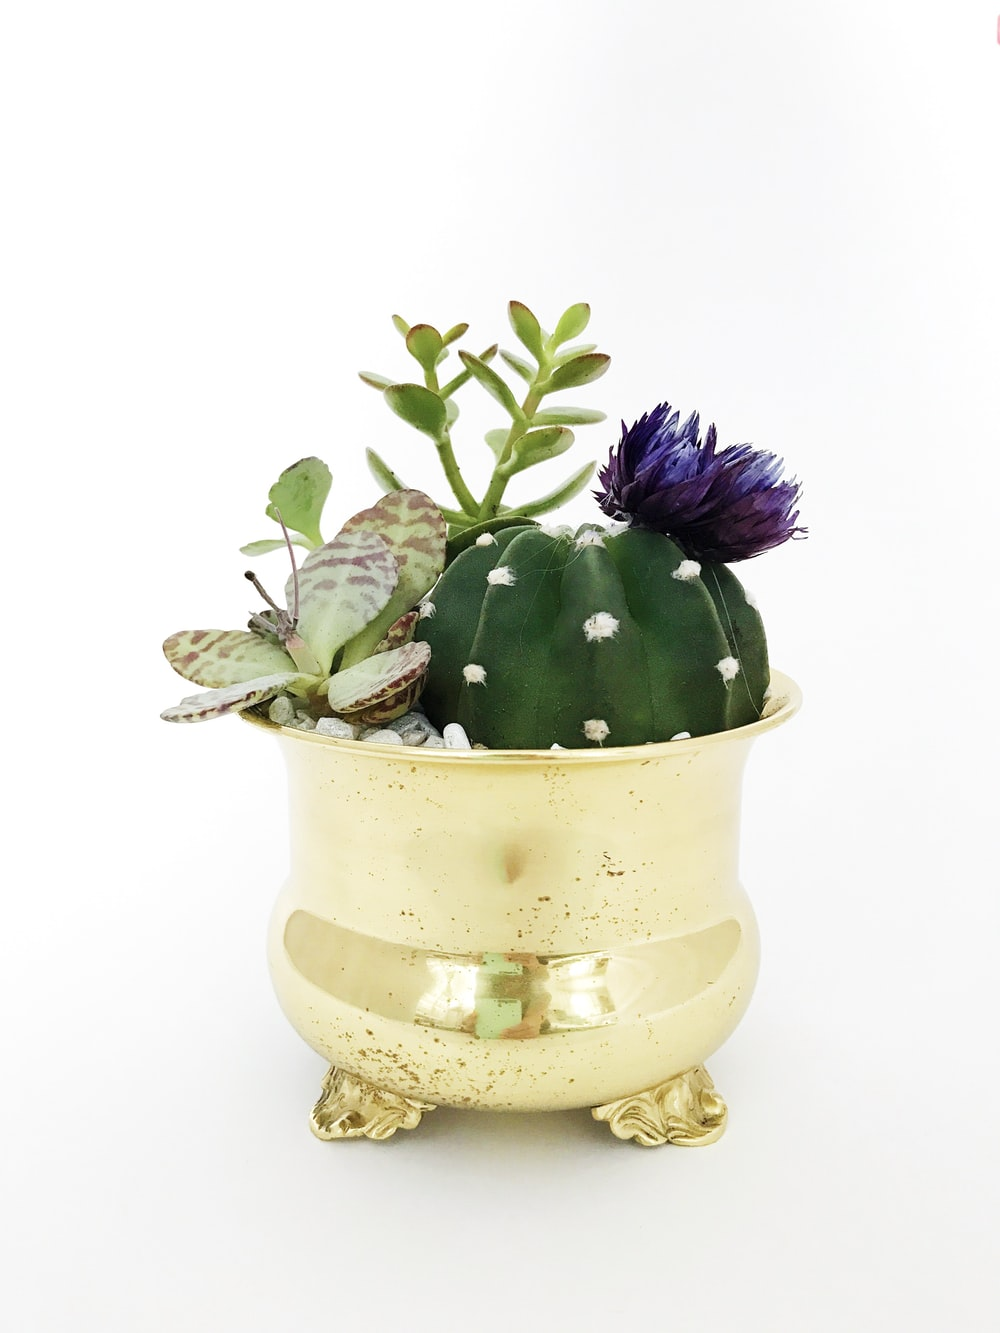 green and purple flower in gold vase